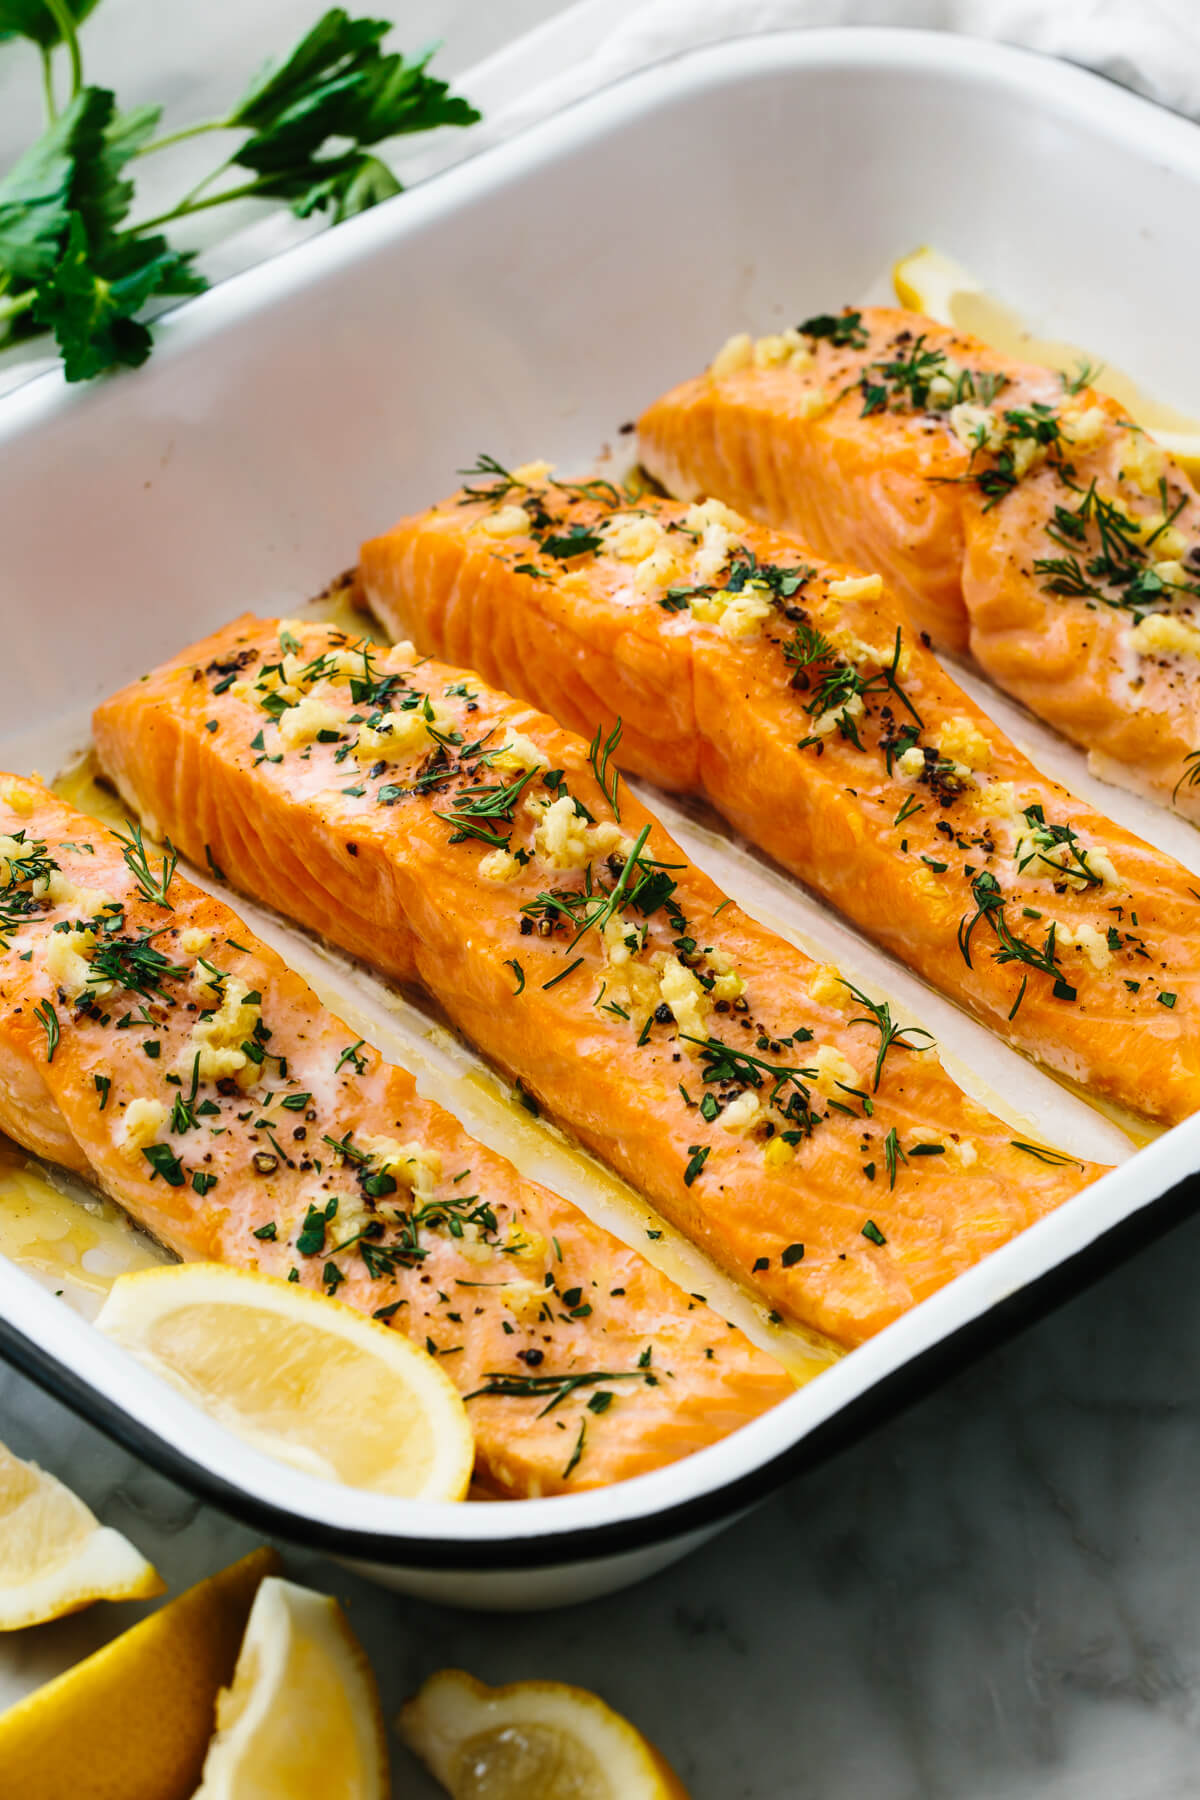 Baked salmon in a pan next to lemon wedges.